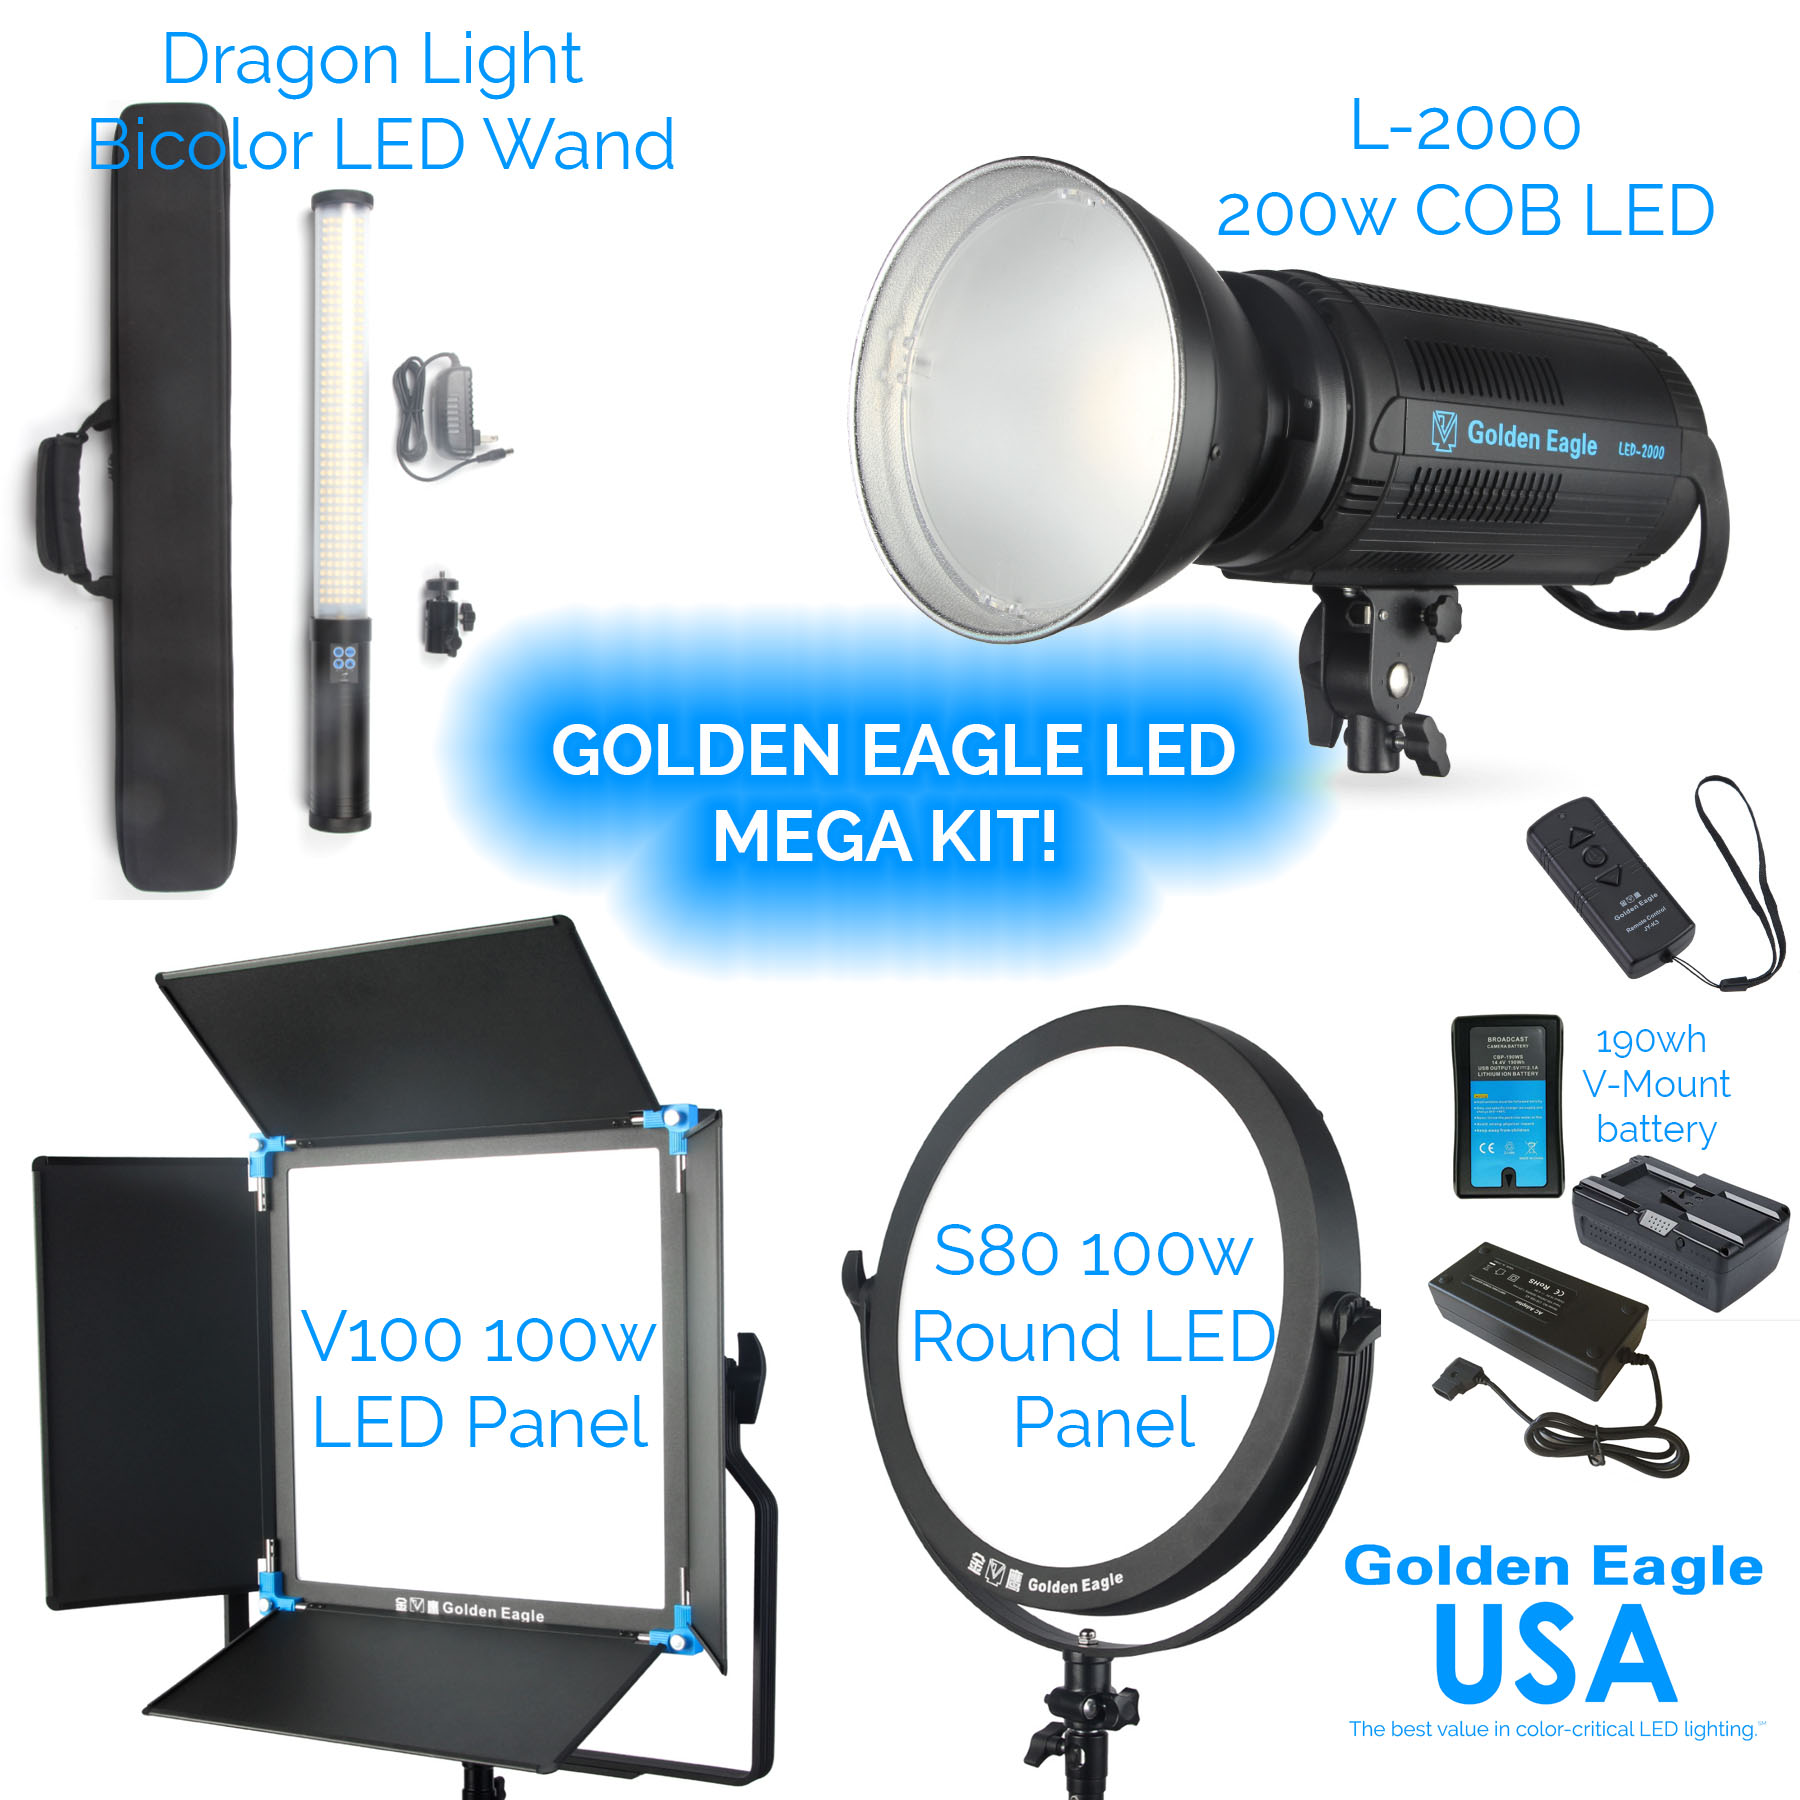 Golden Eagle LED Mega Kit